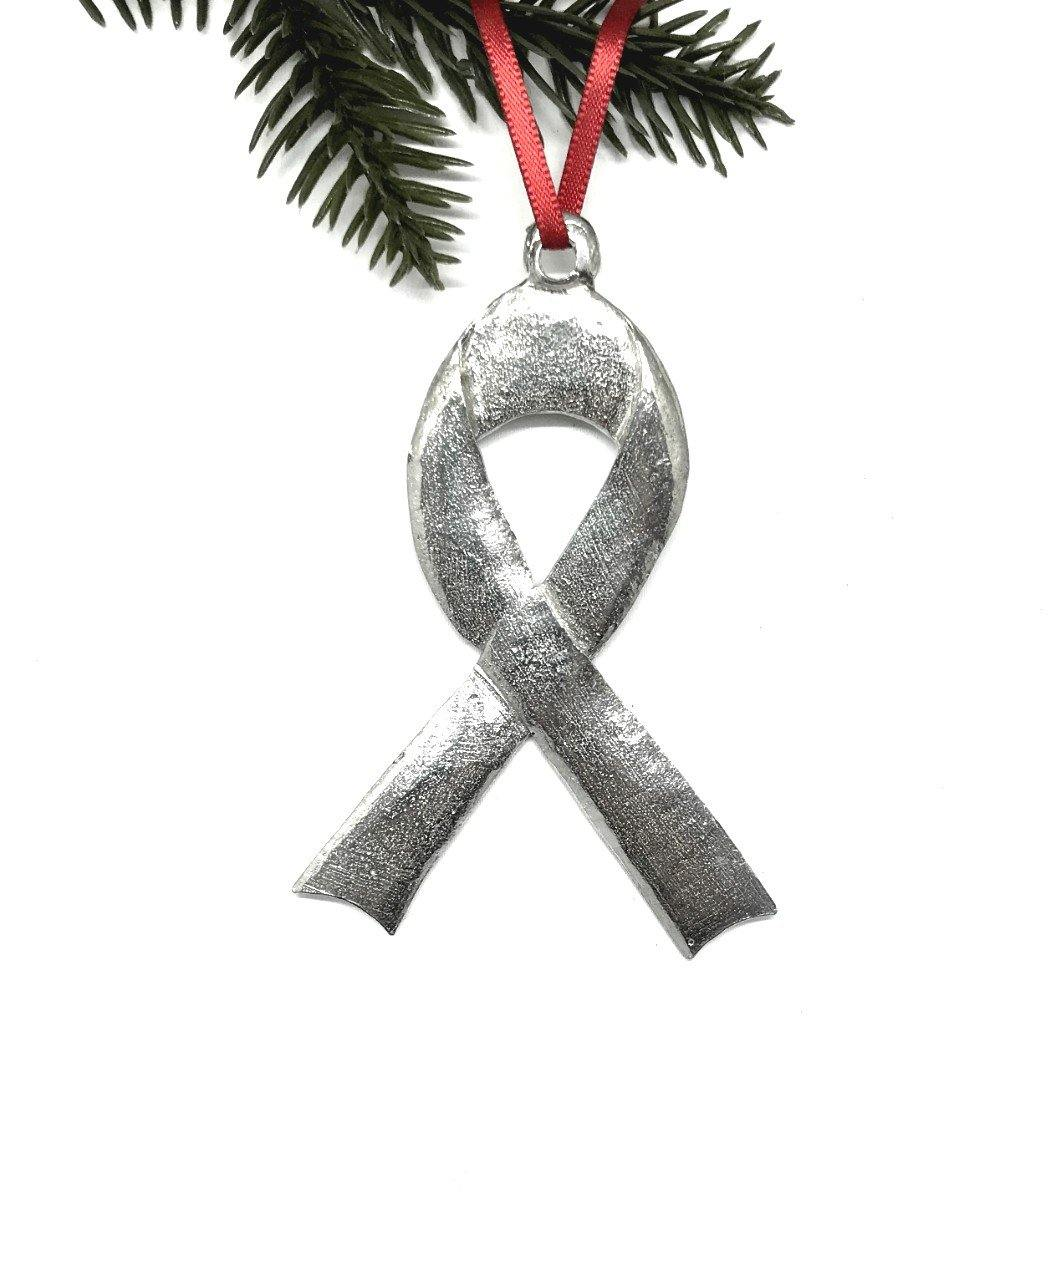 1043 Awareness Ribbon Charity Fundraisers Christmas Holiday Ornament Pewter - House of Morgan Pewter